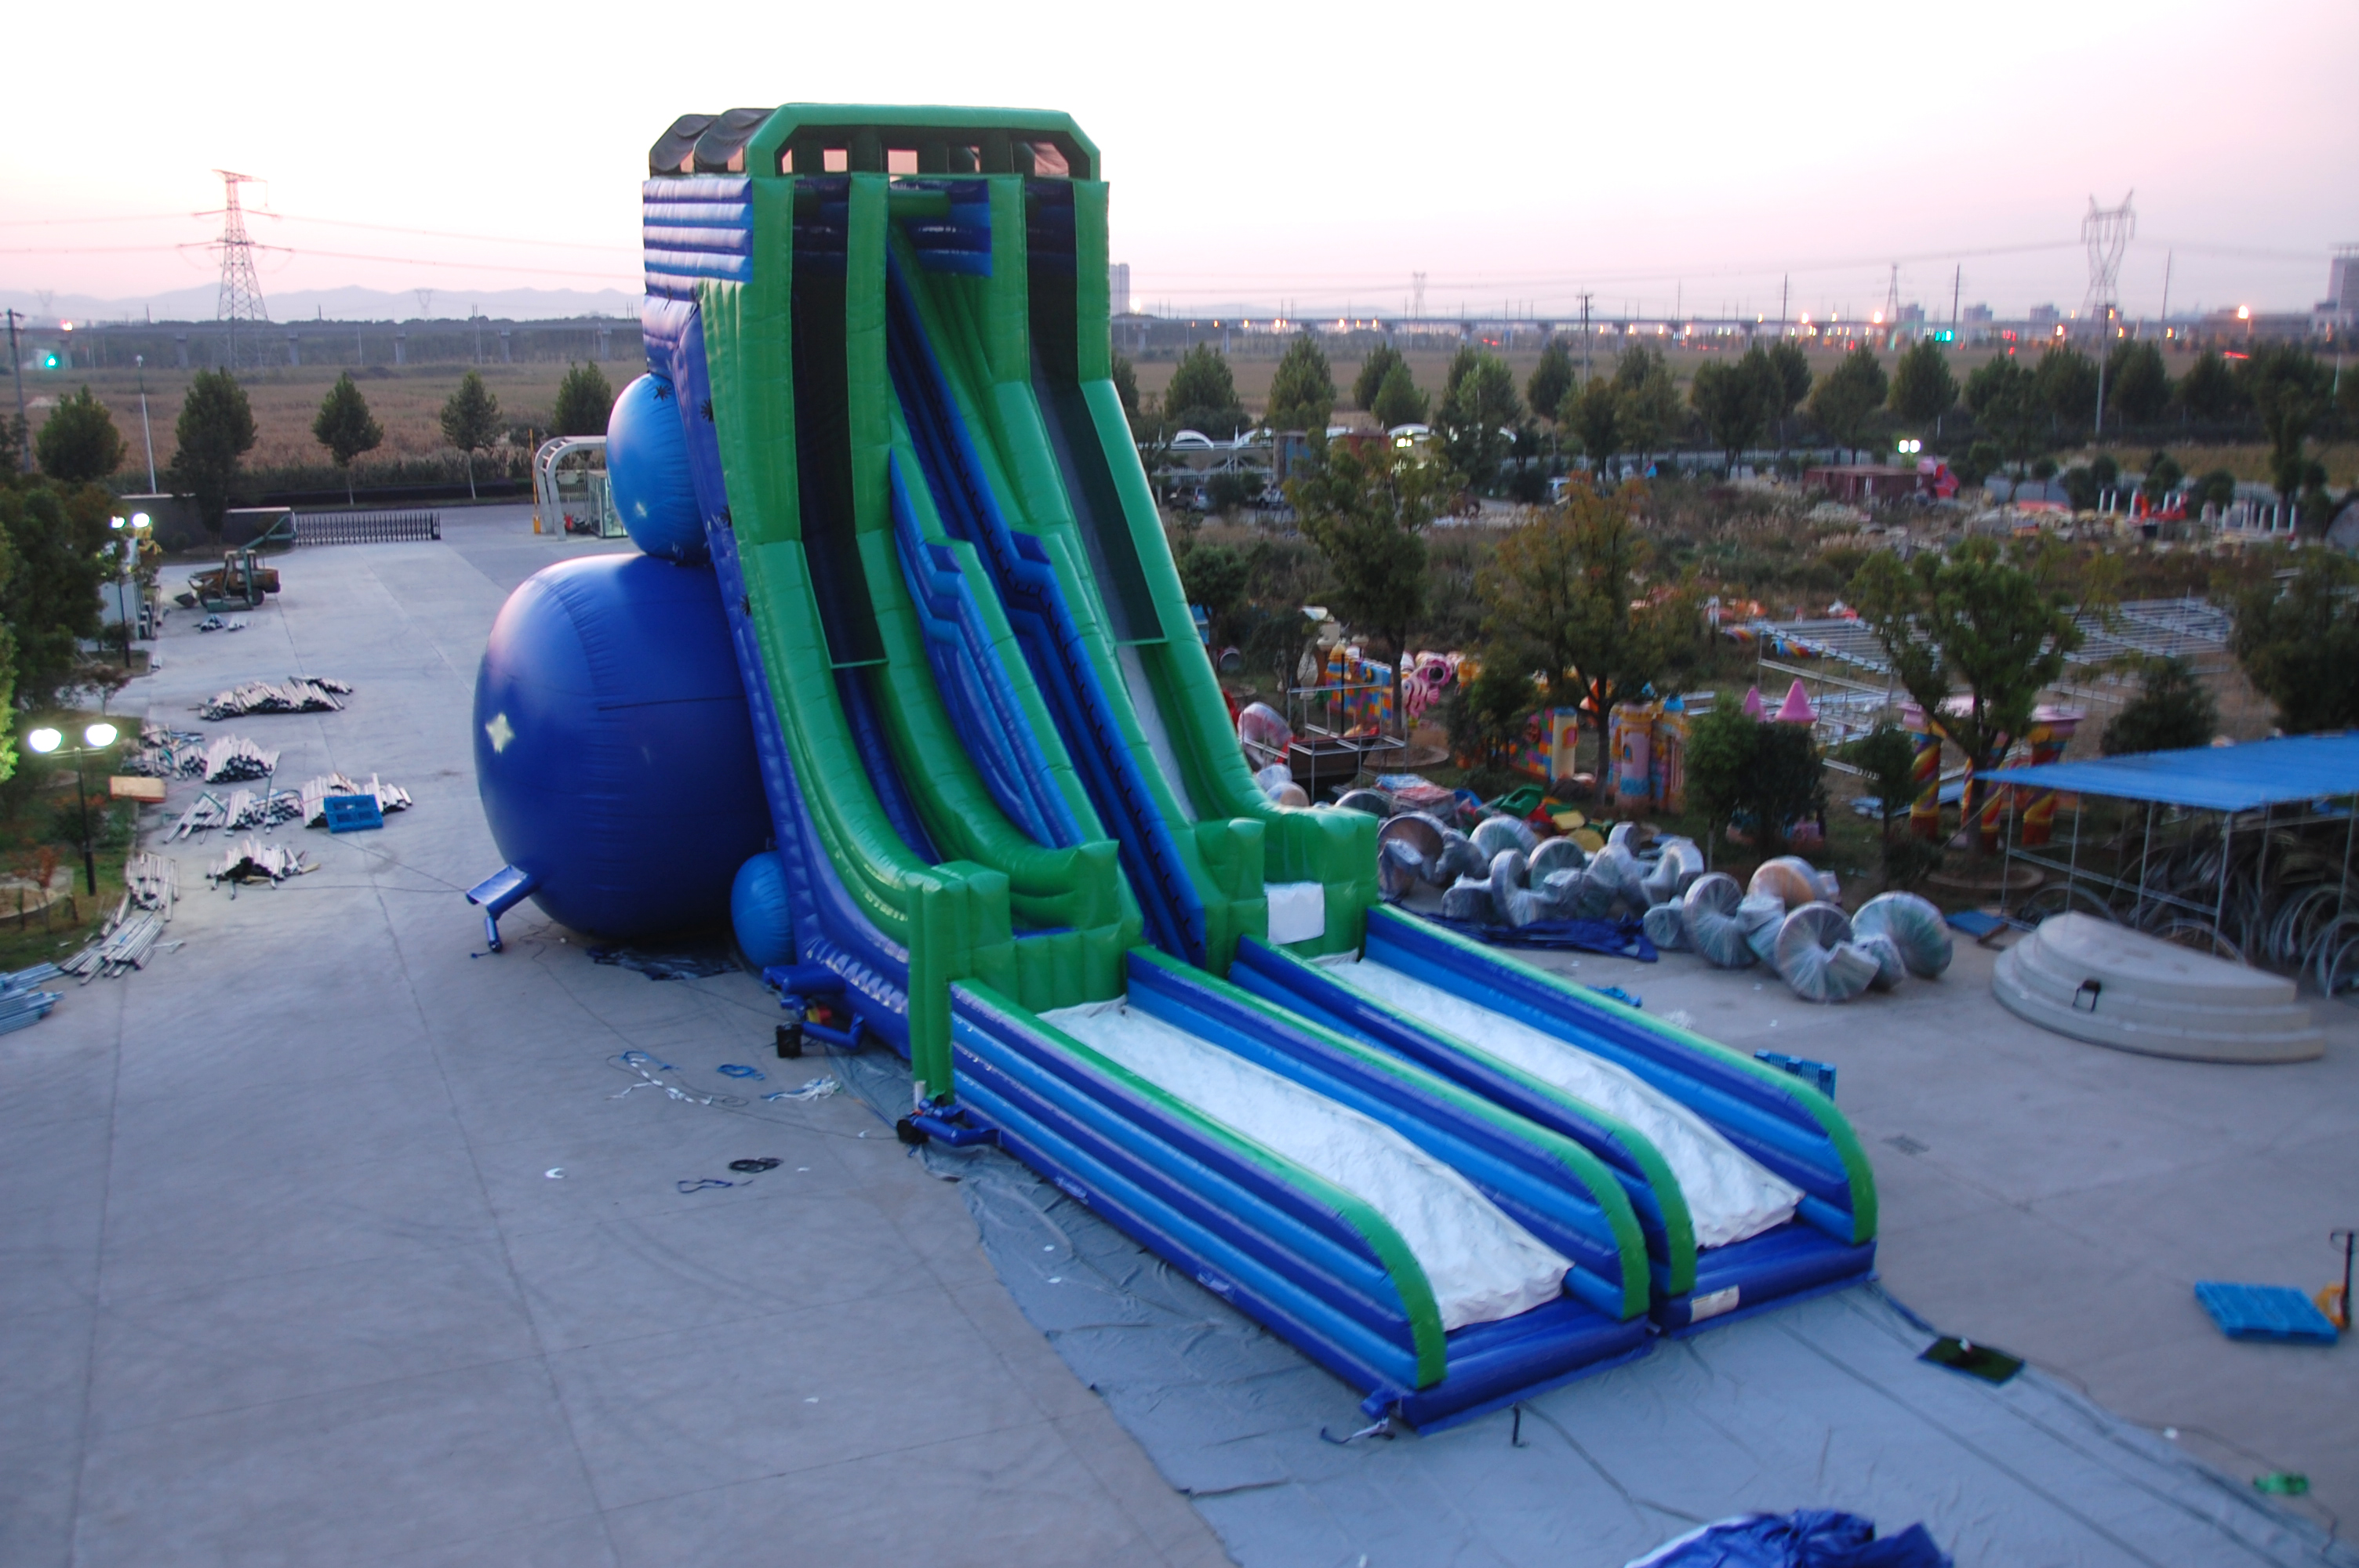 Inflatable Slides And Teampolines For The Water 69